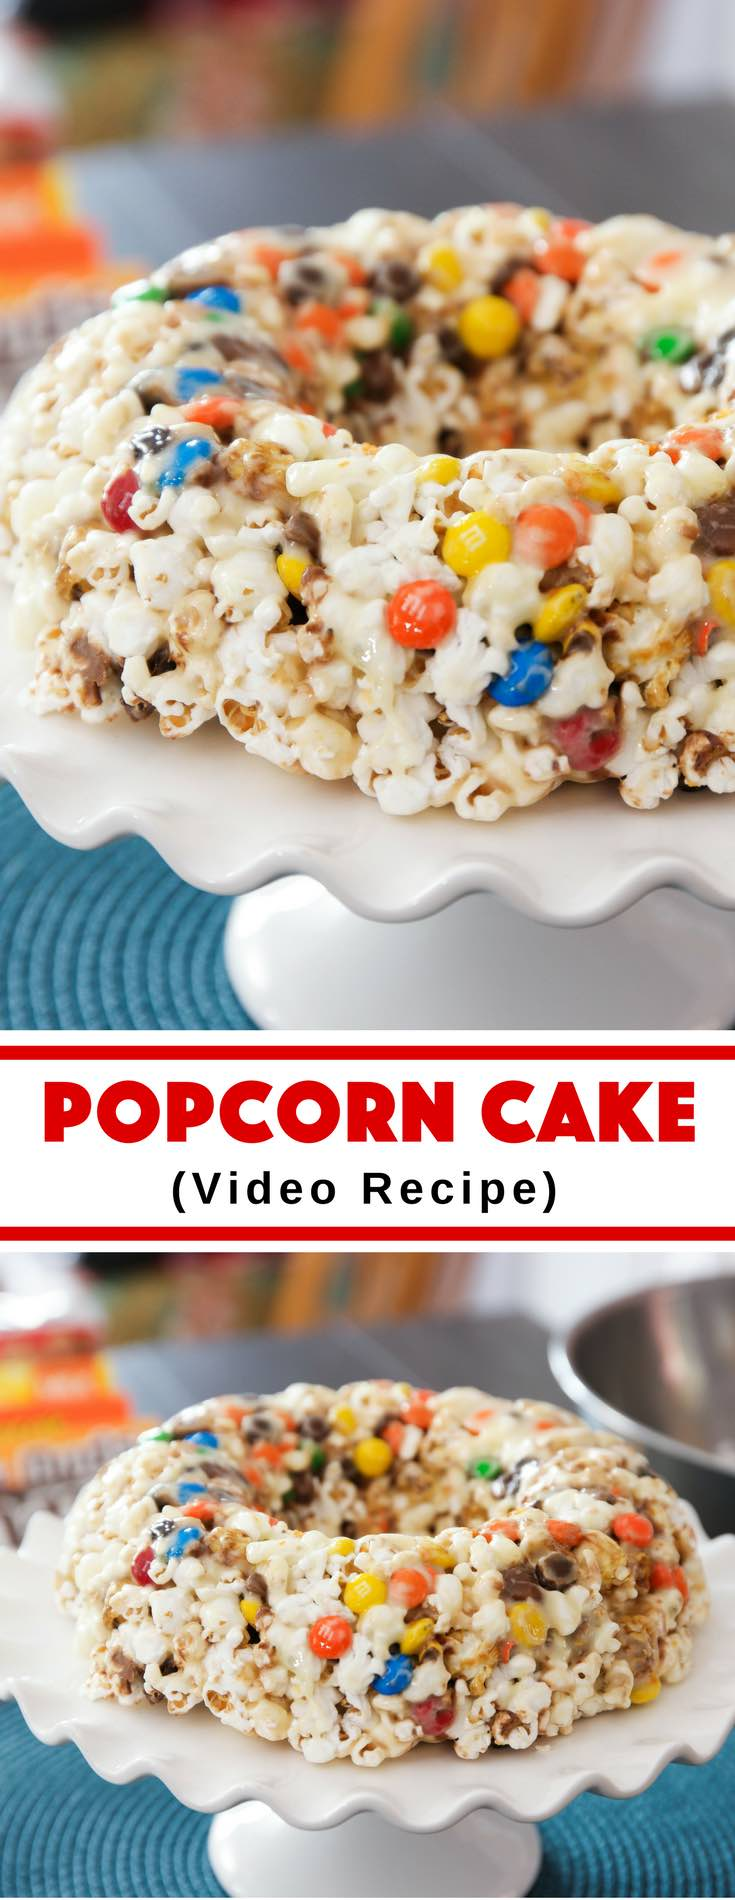 Get ready for an awesome movie or date night with this Popcorn Cake! It tastes better than anything you can find in a movie theater, and it looks fantastic.